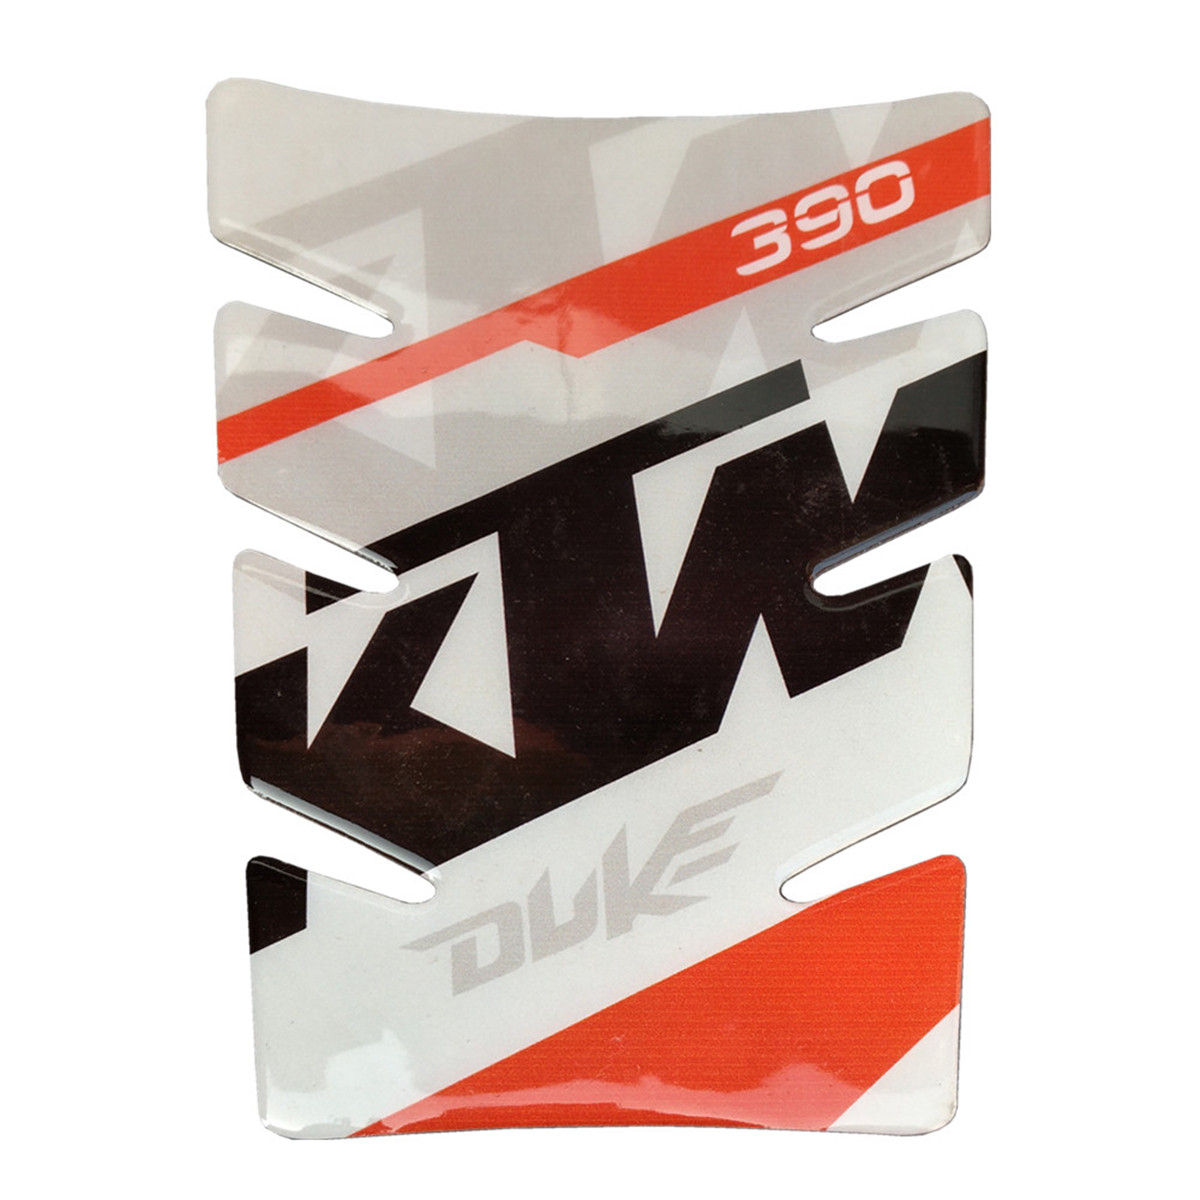 Motorcycle High Quality For KTM <font><b>Duke</b></font> 390 Tank Pad <font><b>Sticker</b></font> 3D Decal Emblem 2018 2017 Tankpads Motor parts motorcycle protection image